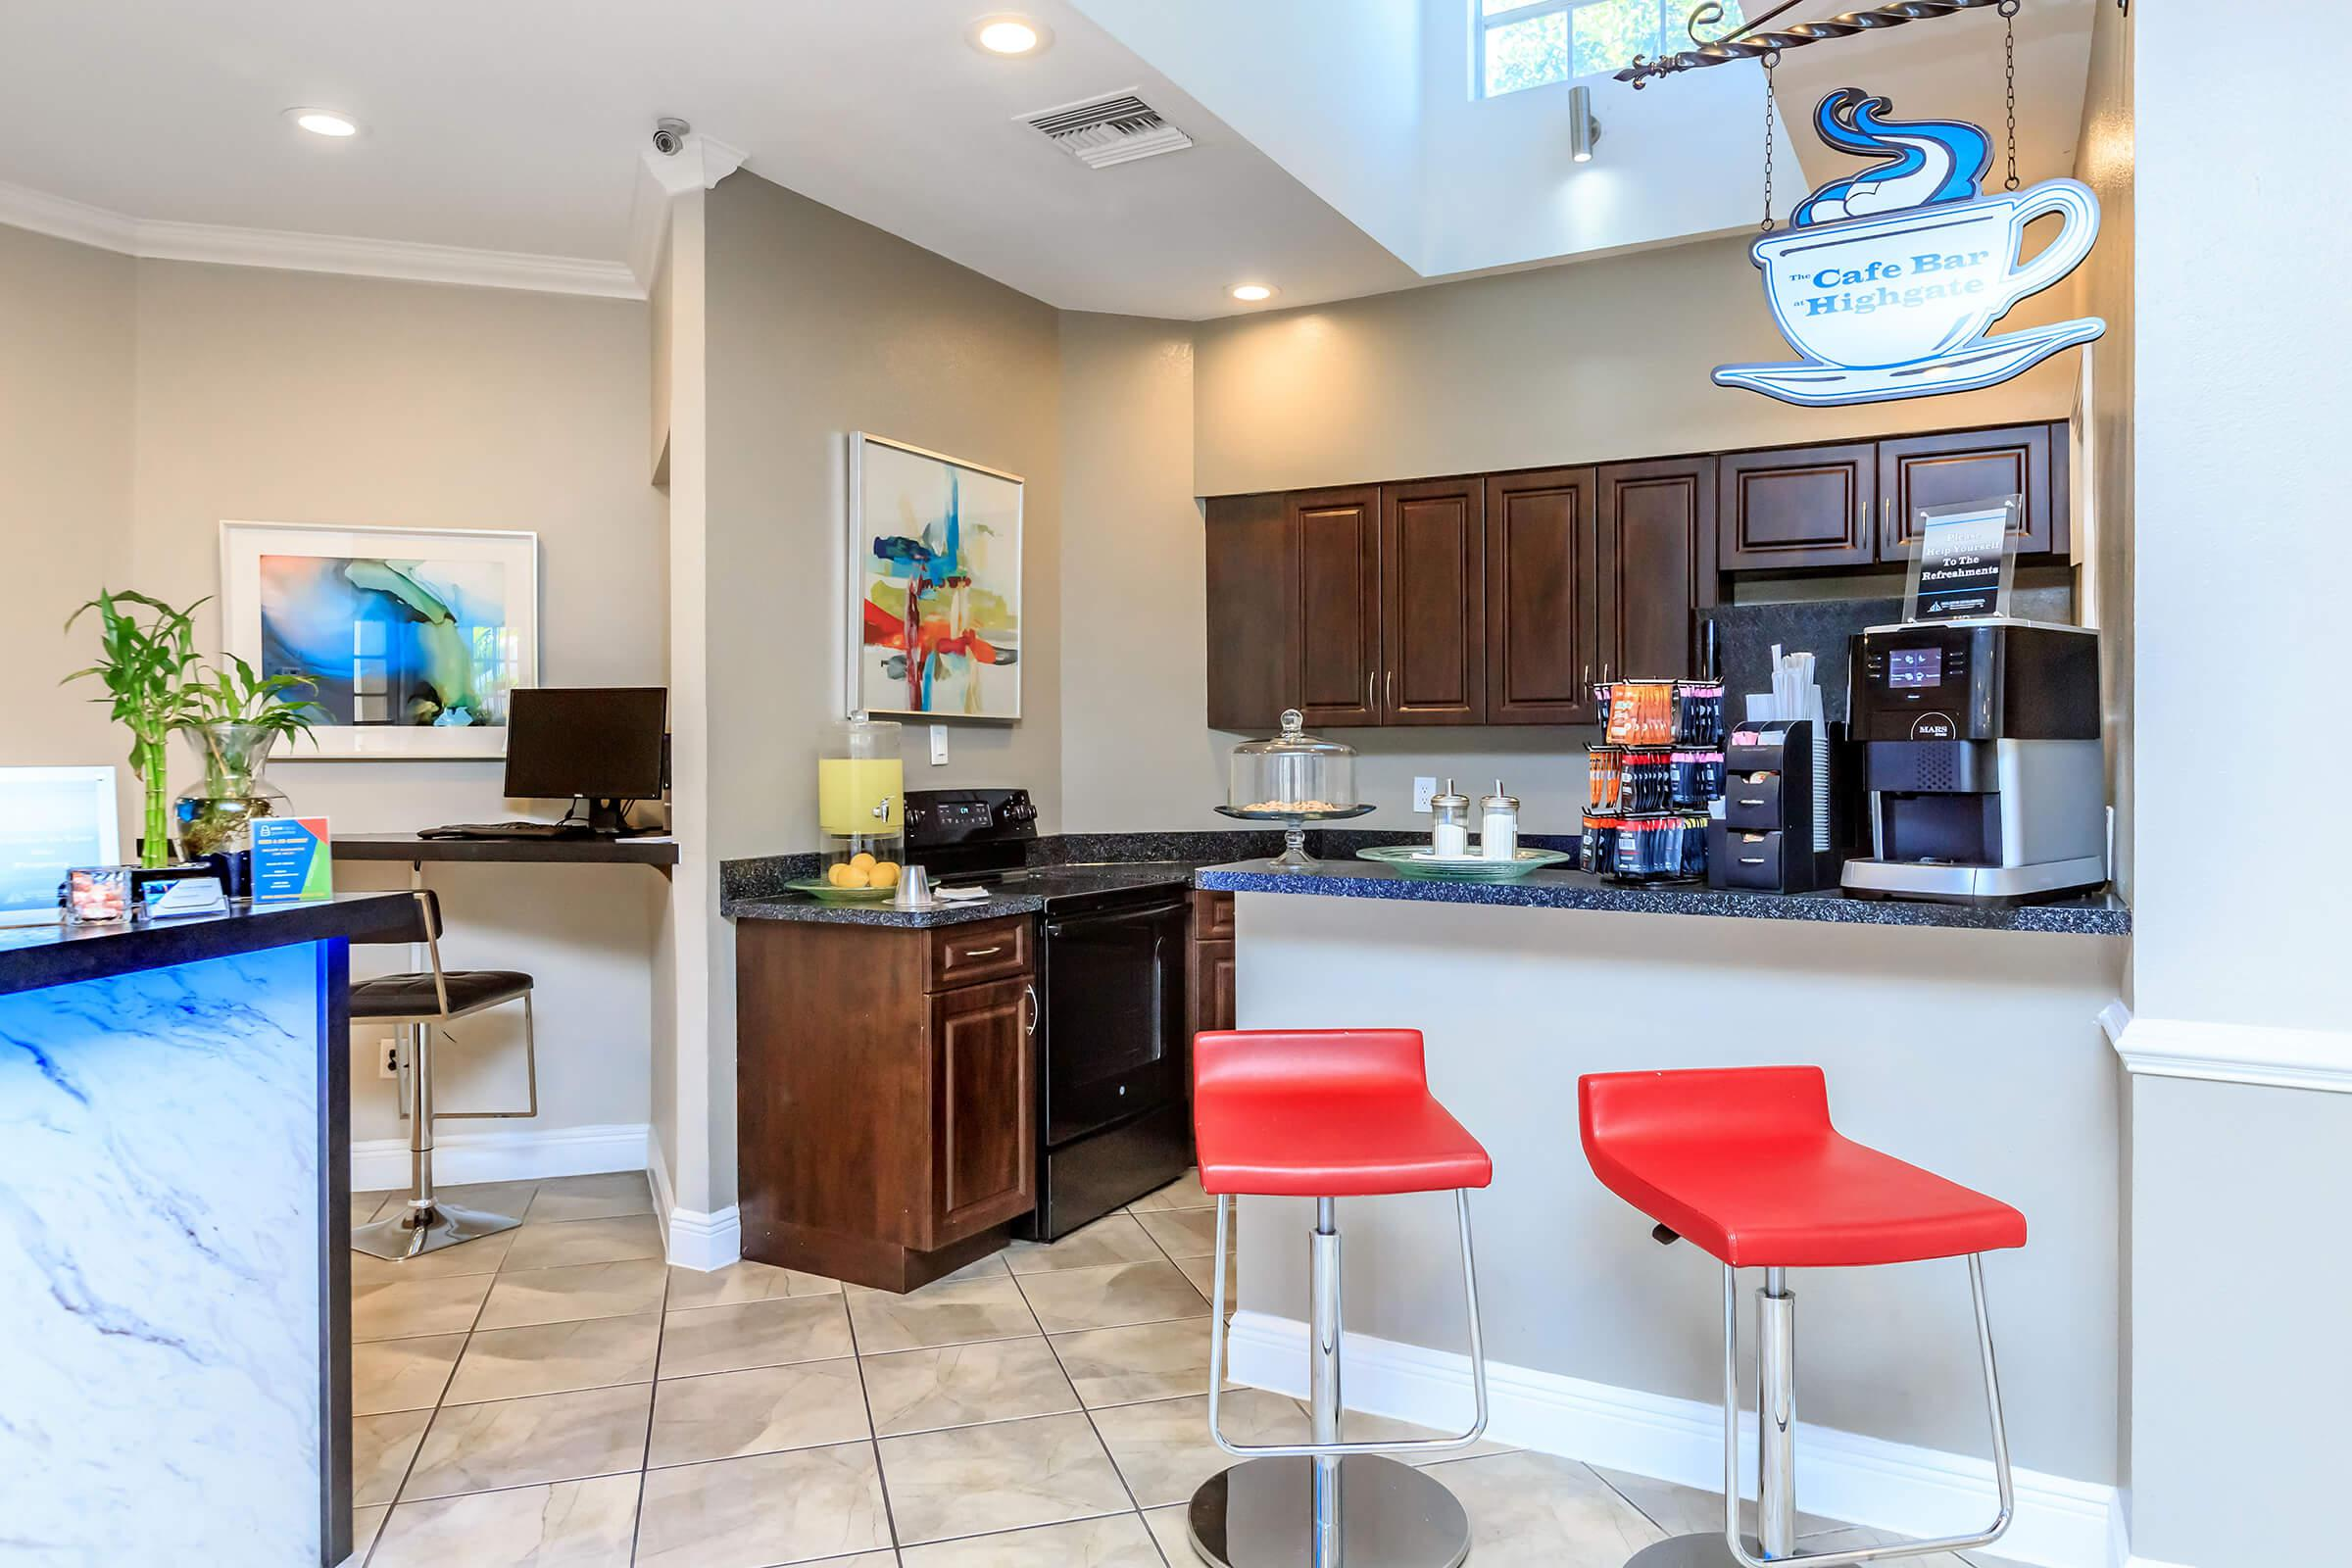 a kitchen with a red chair in a room